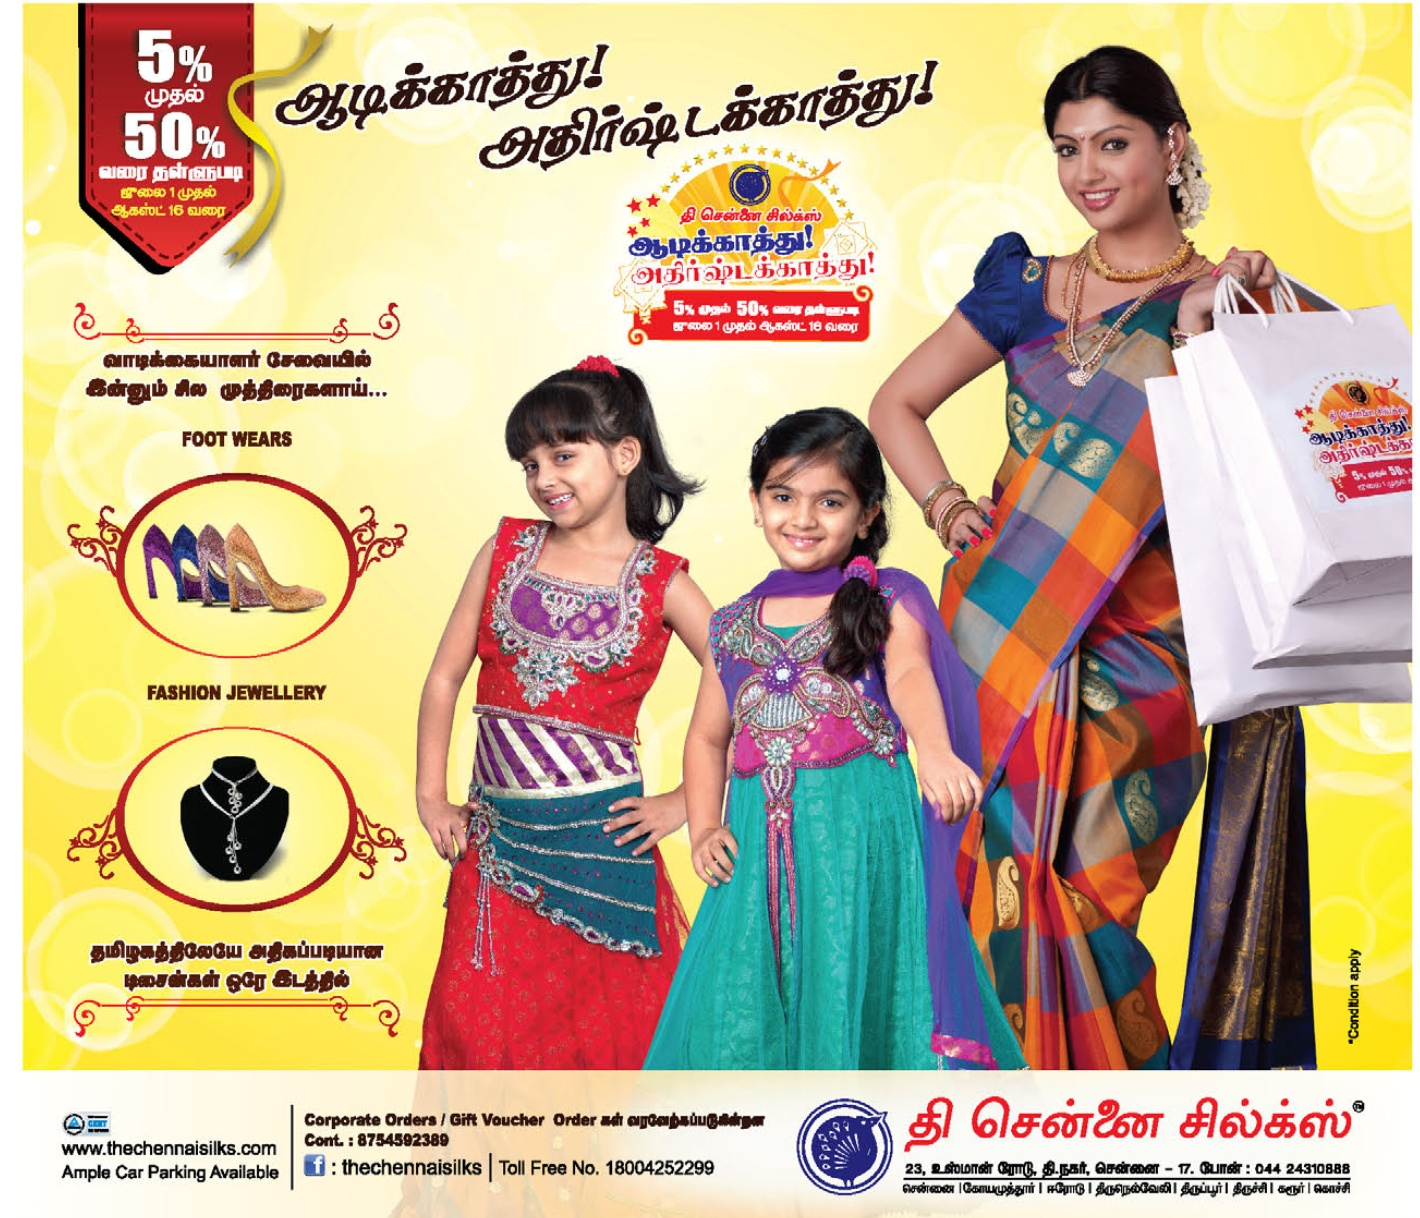 Sale News And Shopping Details March 2012: The Chennai Silks Aadi Sale